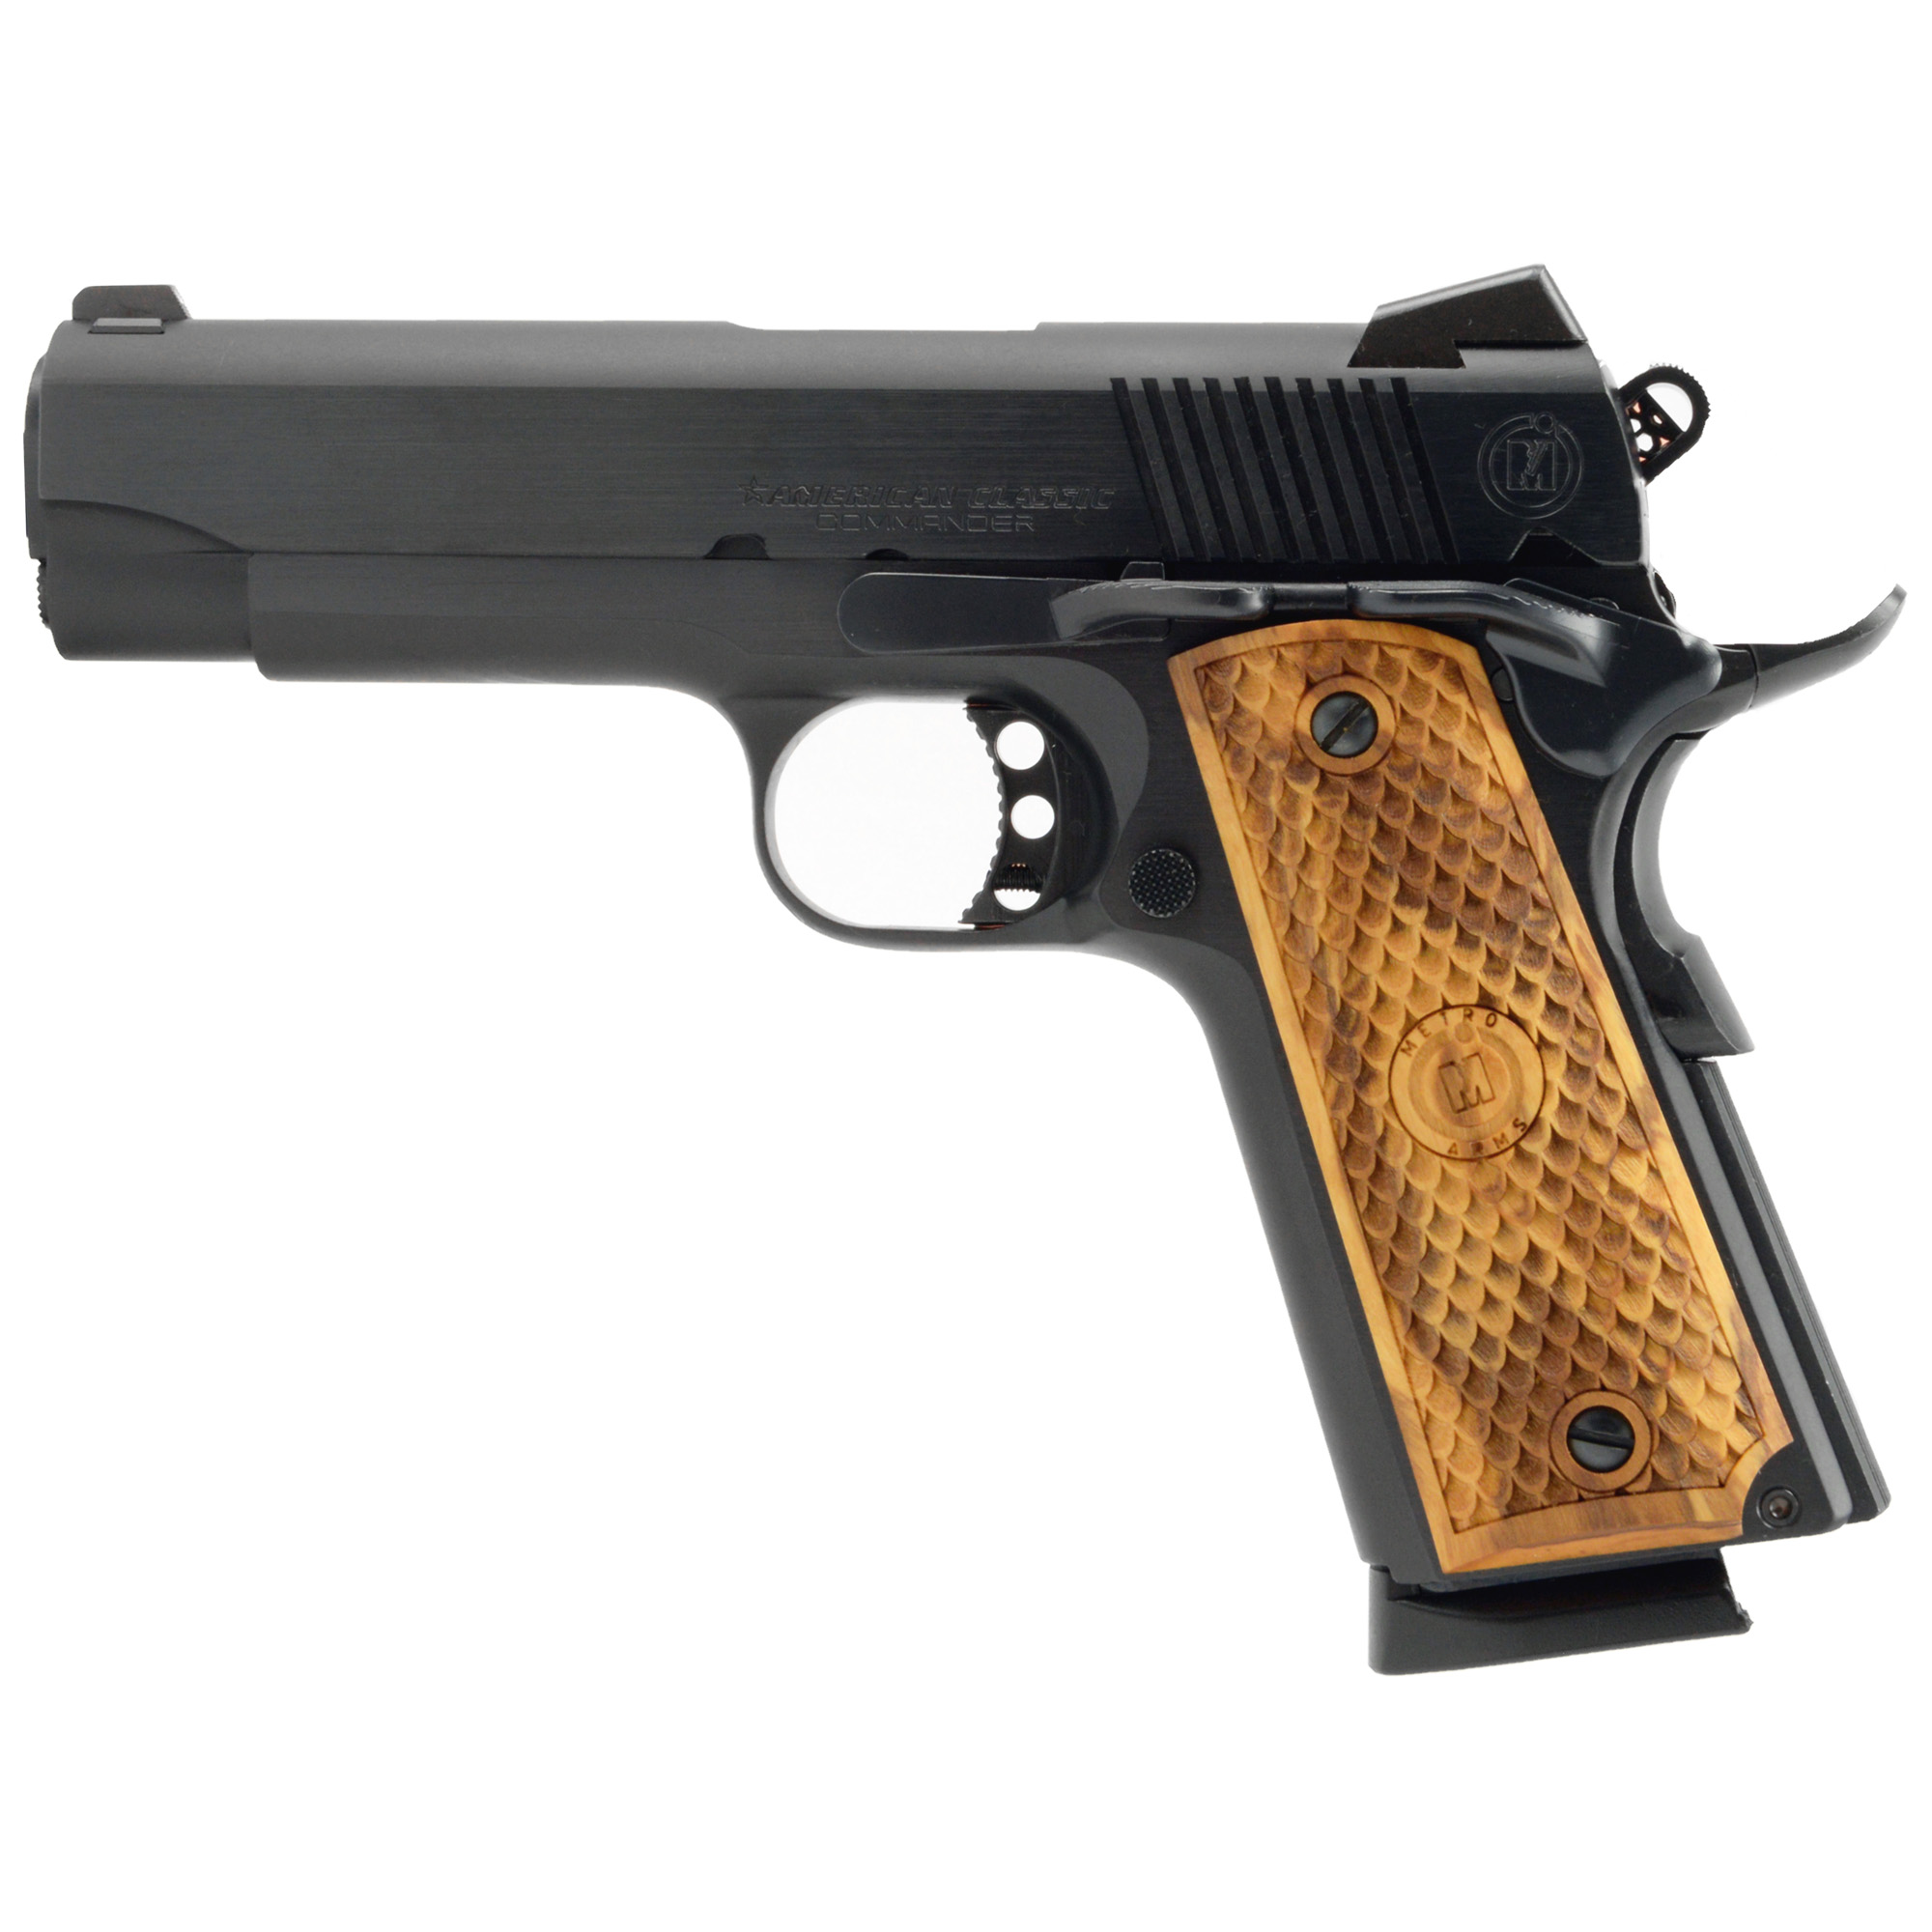 """It's tight"""" accurate"""" and has a nice trigger pull. American Classic offers a 1911 that speaks for itself with excellent fit and finish. Reach for an icon. Reach for an American Classic."""